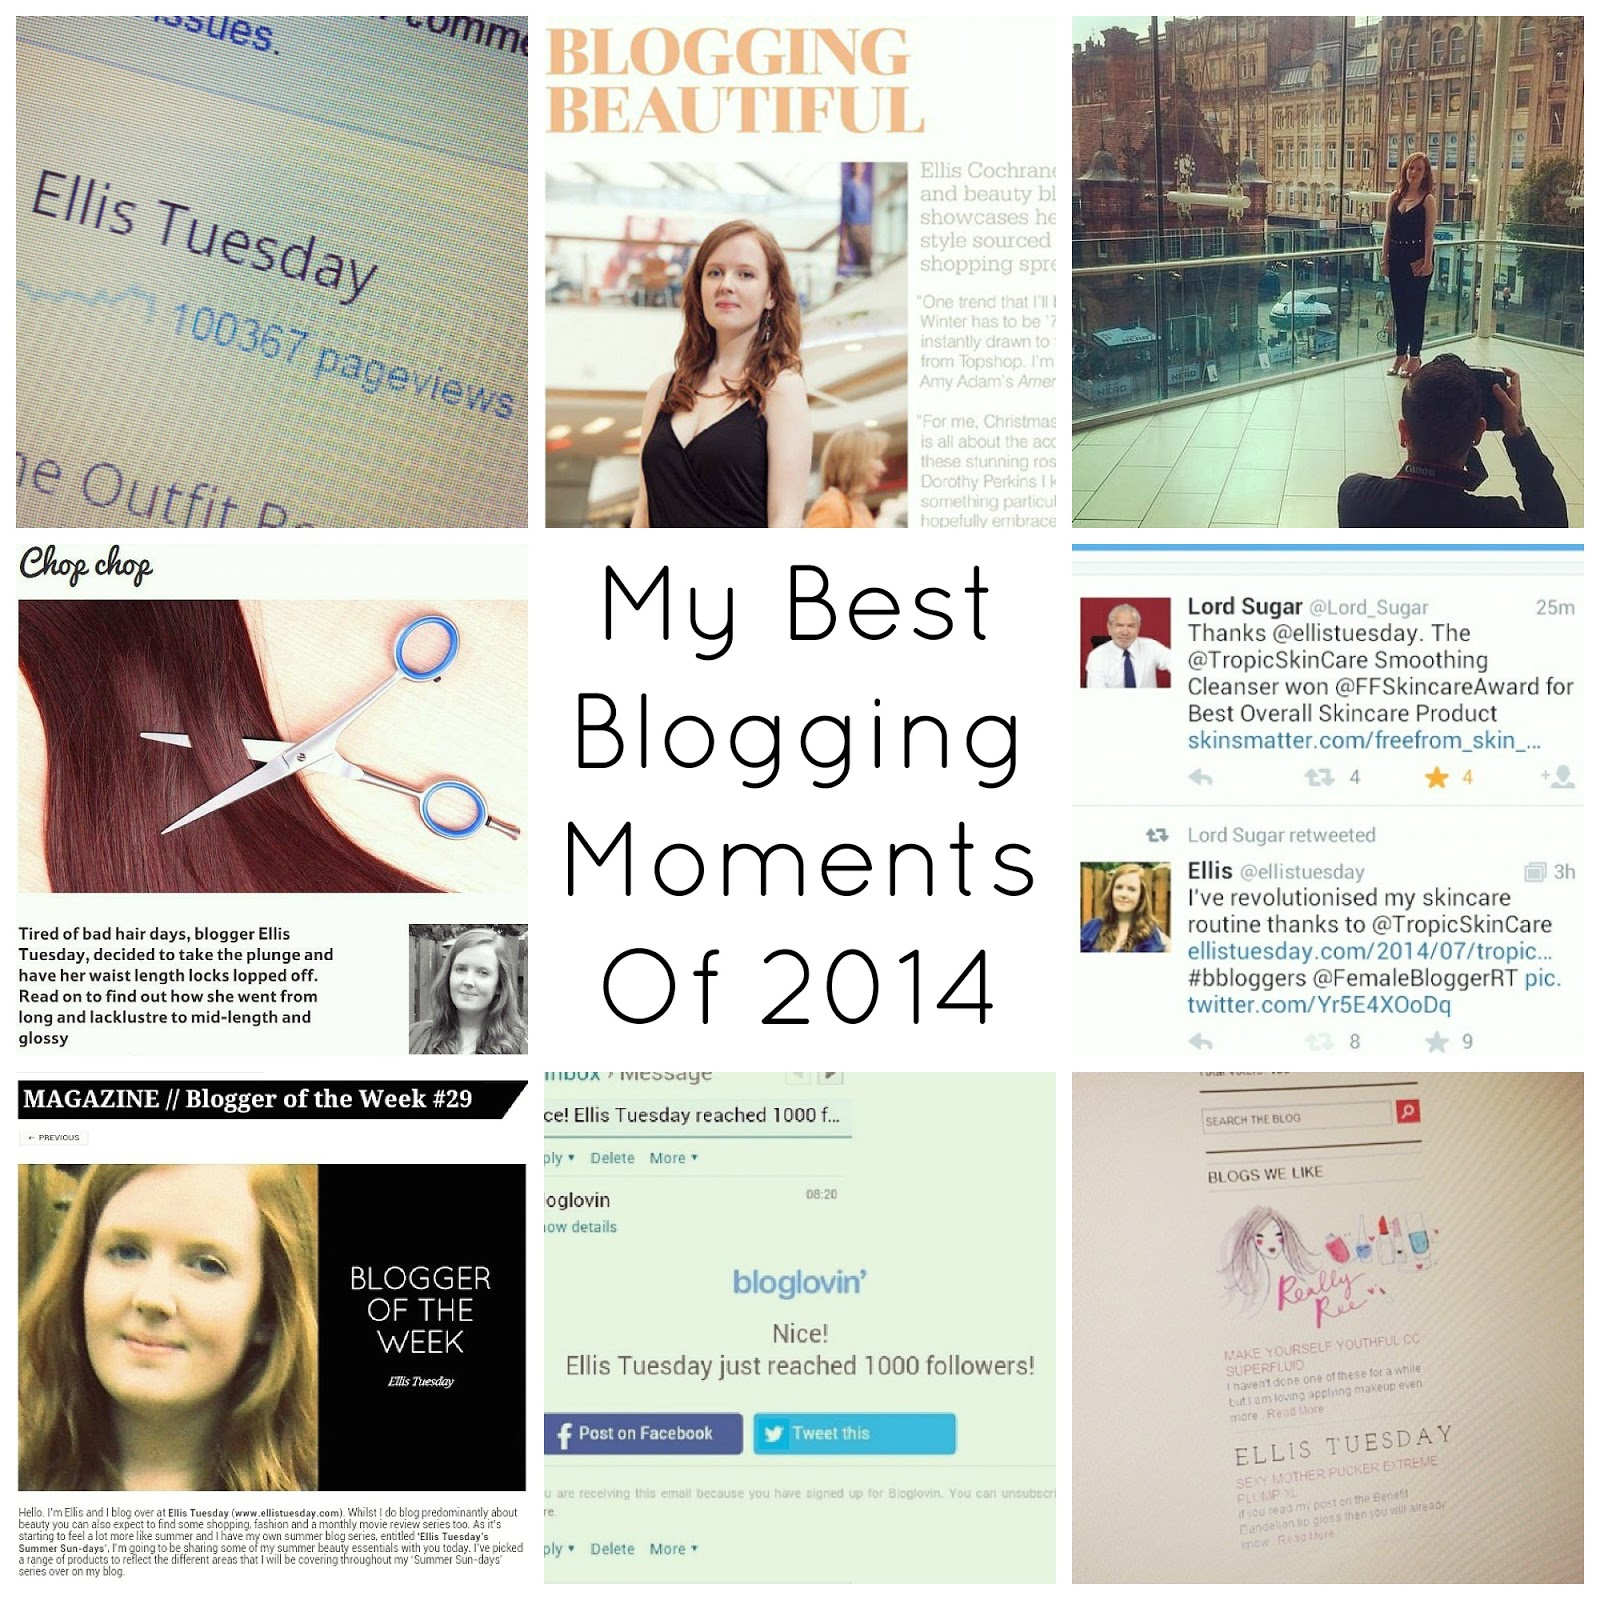 Best Blogging Moments of 2014